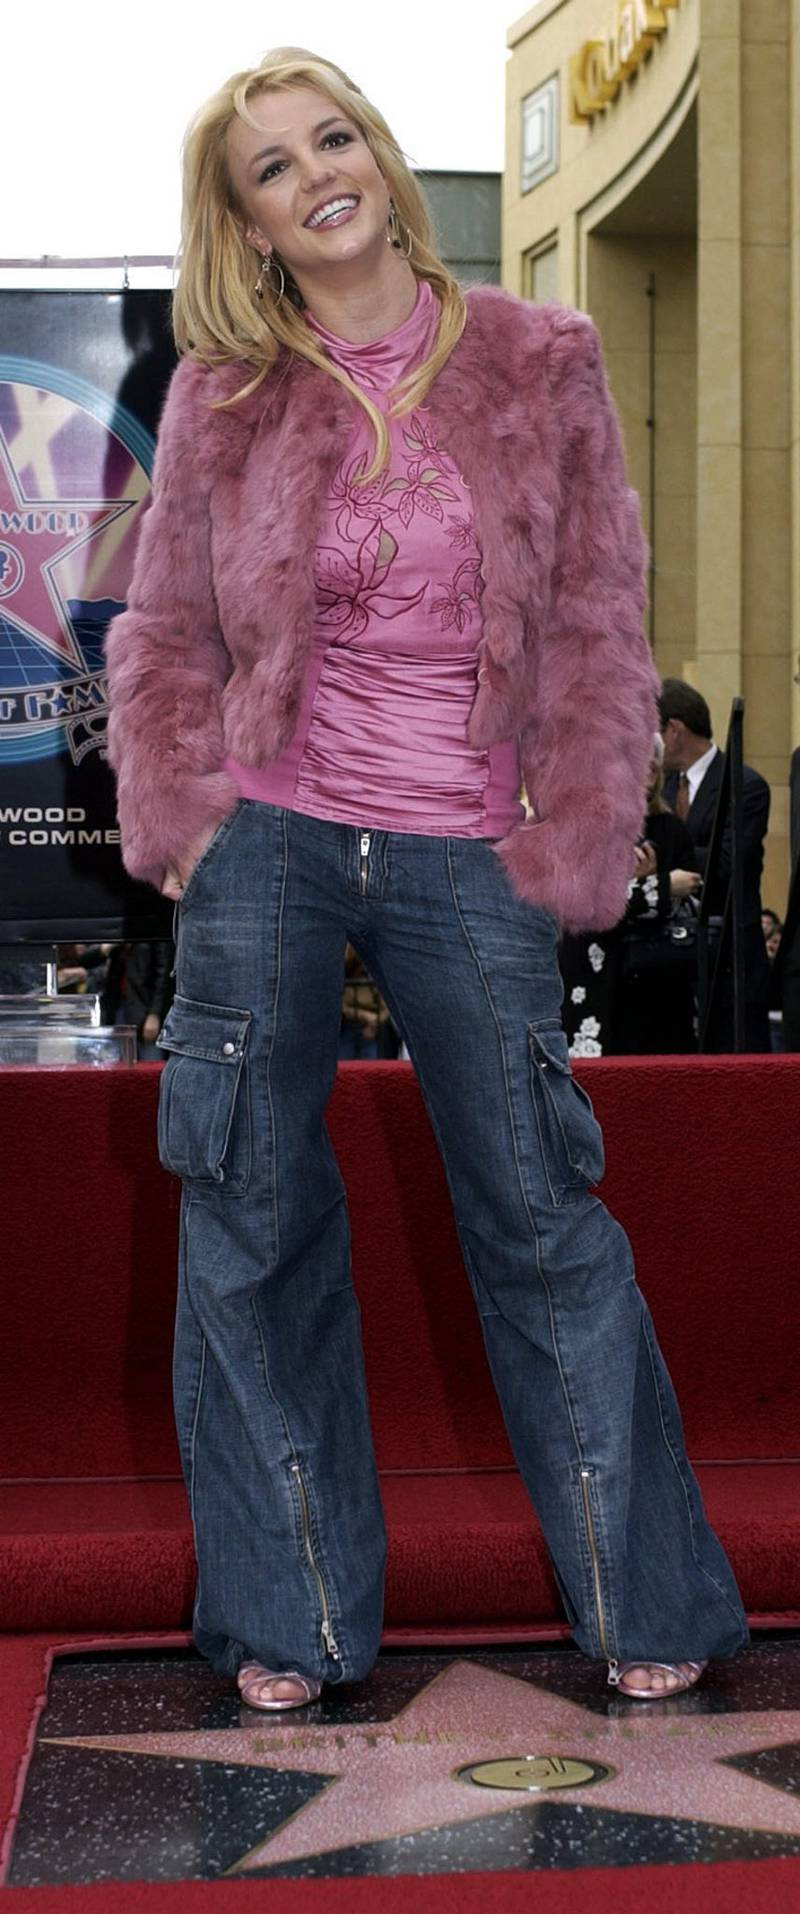 (FILES) A file picture taken in 2003 of US singer Britney Spears on the Hollywood Walk of Fame. Britney Spears married childhood friend Jason Alexander, both 22 years, from Lousiana at the Little White Wedding Chapel on the Las Vegas Strip, Saturday 03 January 2004. Britney and Jason arranged a signed annulment Saturday afternoon which will become official when the courts open on Monday morning 05 January.  EPA/Javier Rojas